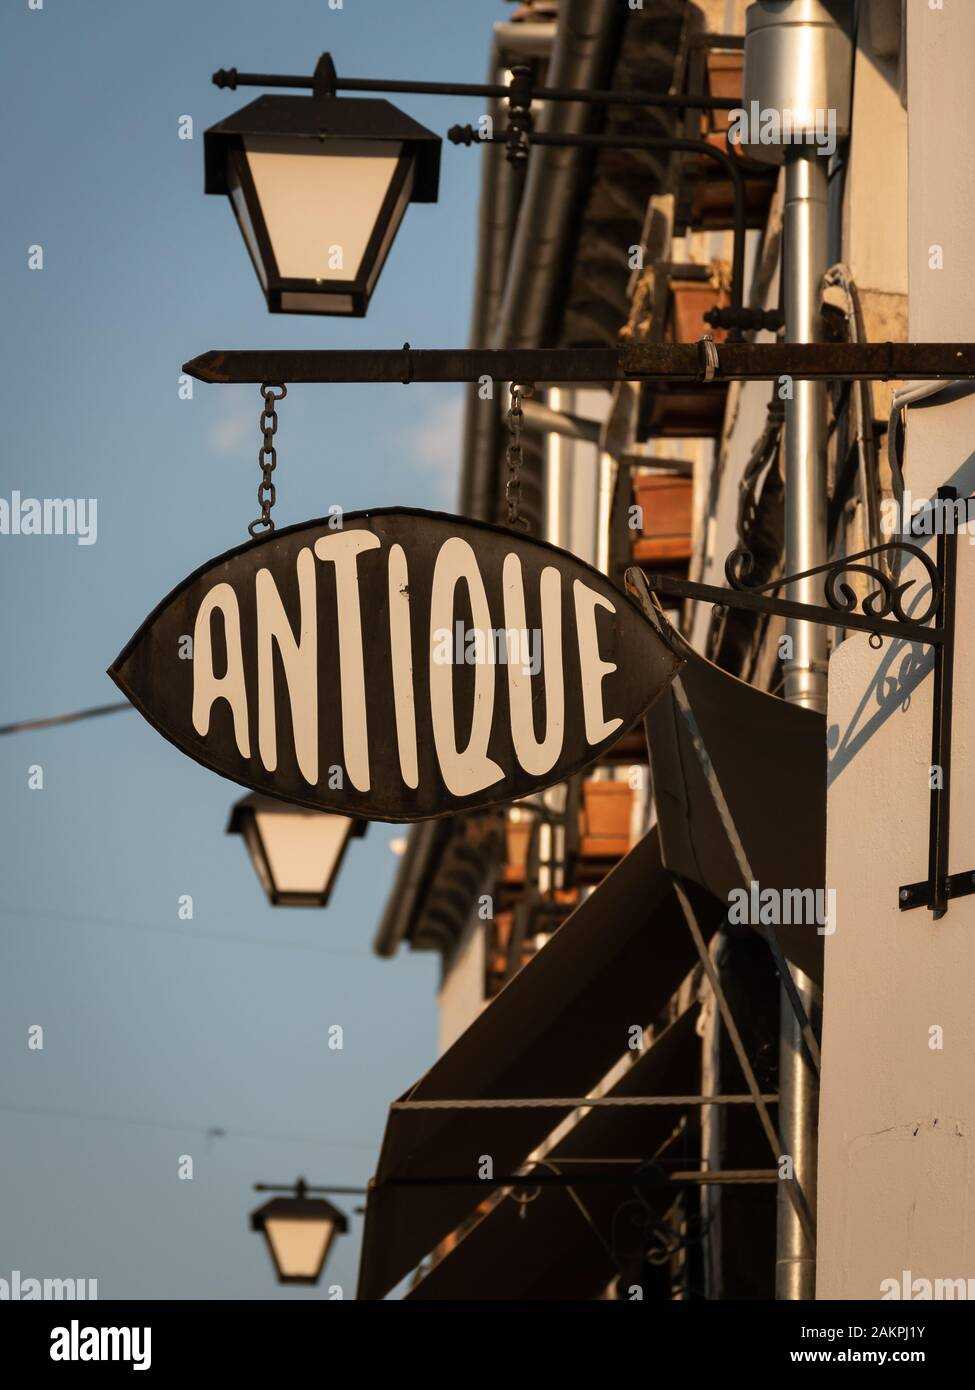 Antique shop sign in Gjirokaster old town, Albania Stock Photo